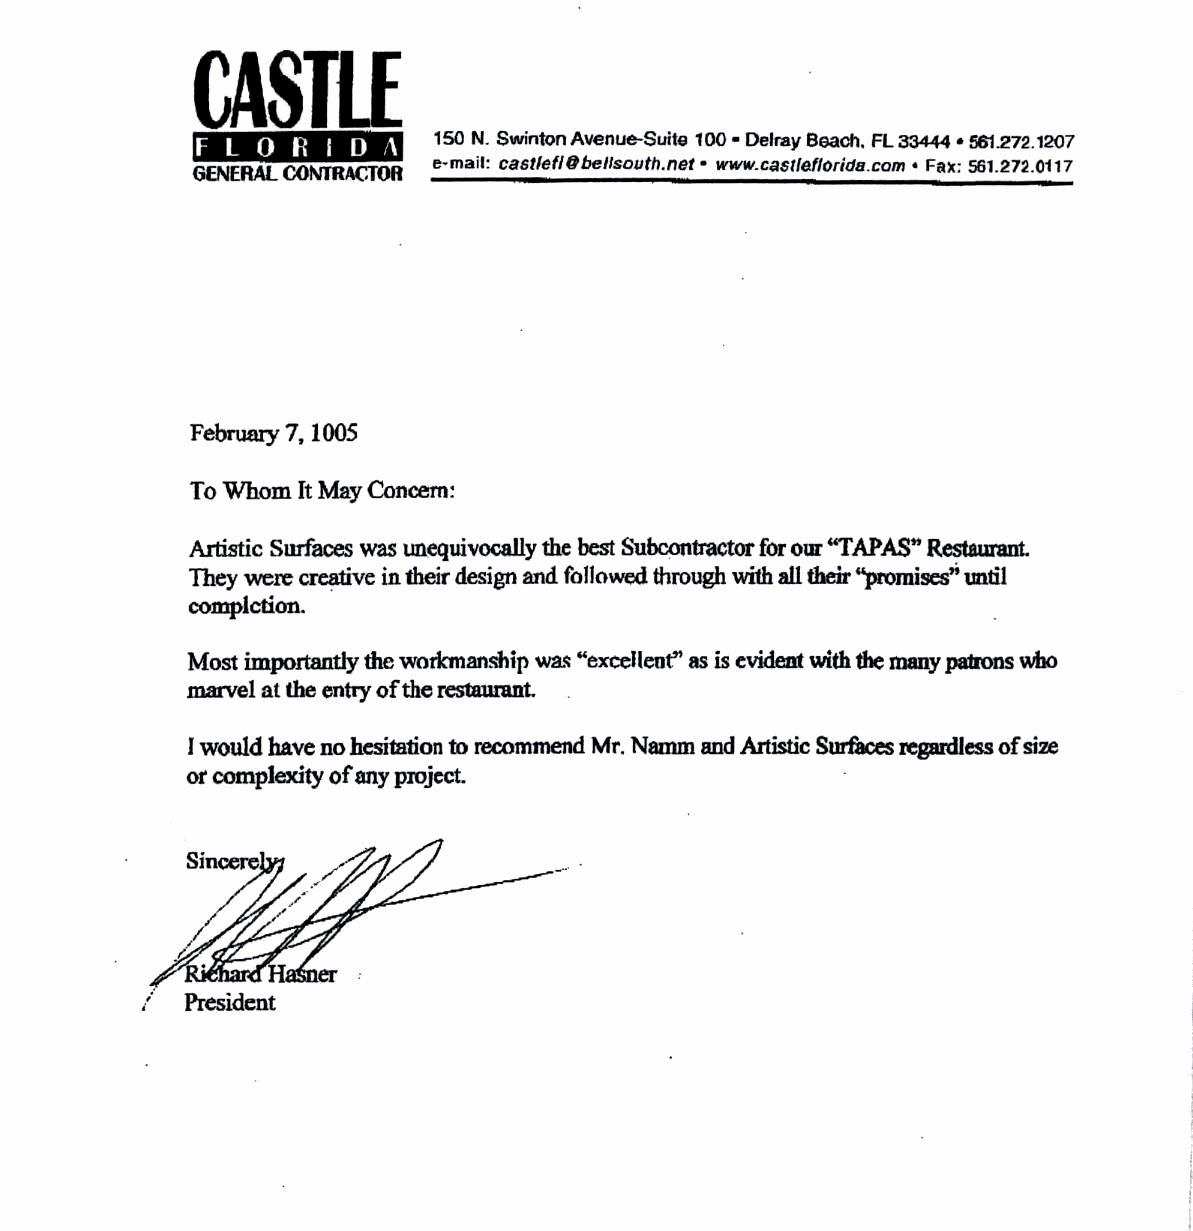 Letter Of Testimony Example Awesome Artistic Surfaces Testimonials and Ratings